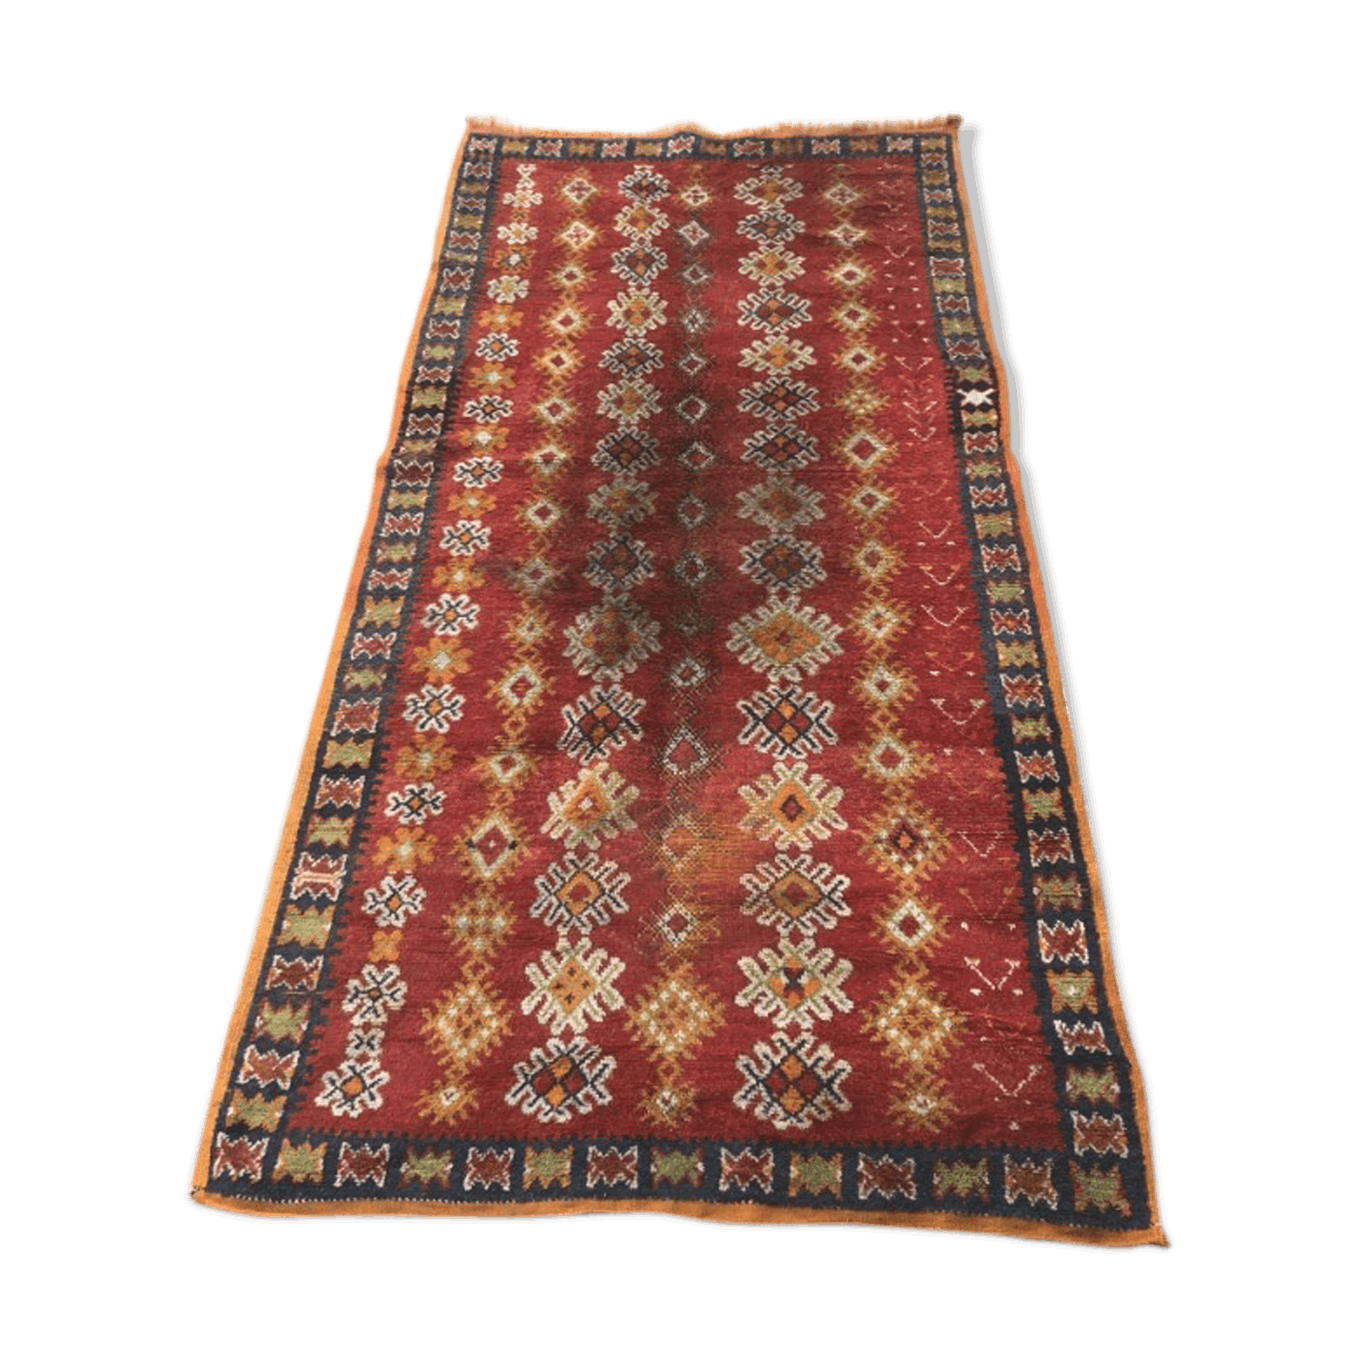 Antique Moroccan Berber carpets